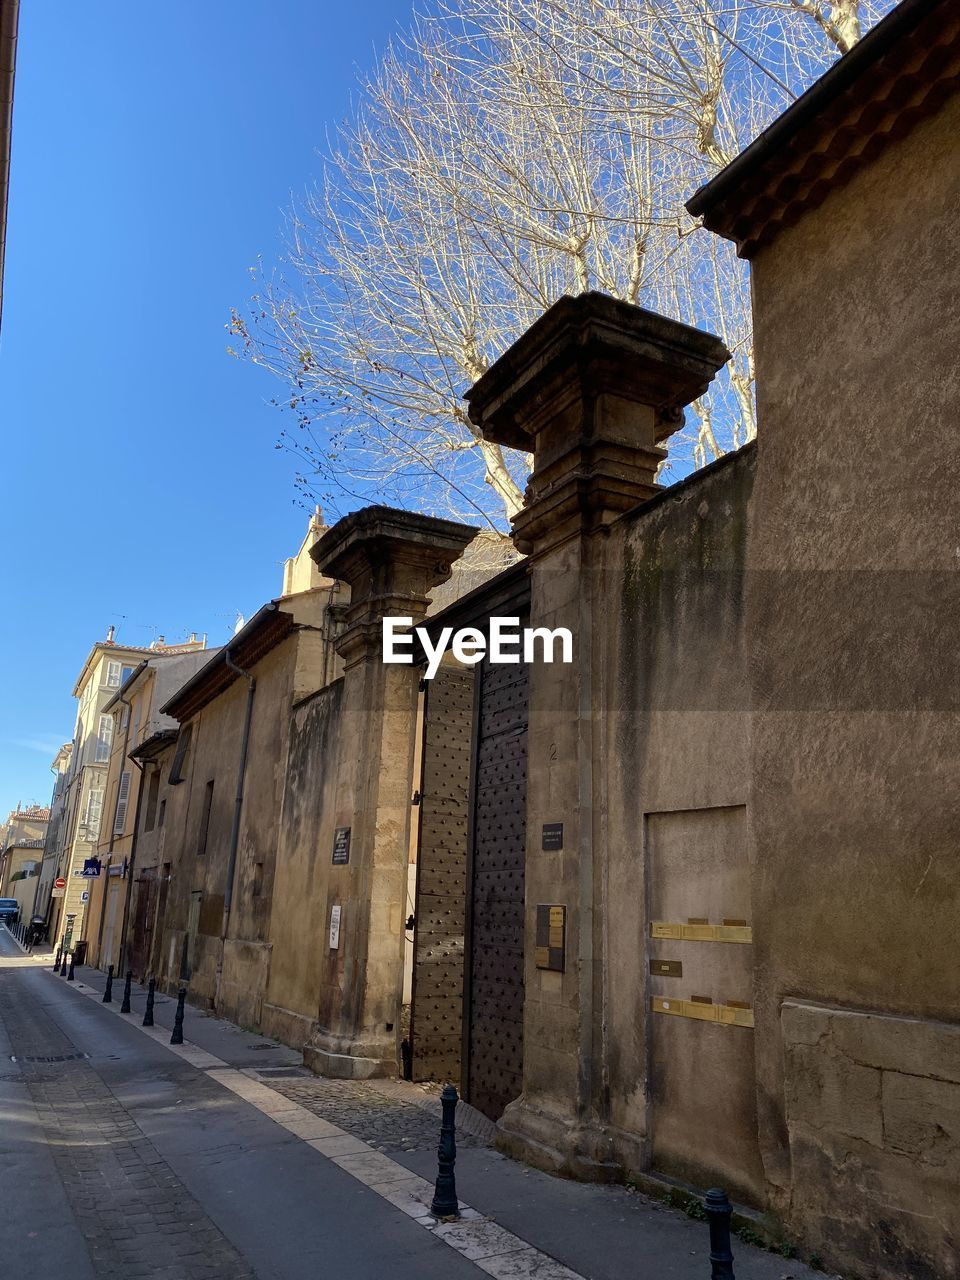 architecture, built structure, building exterior, sky, building, nature, day, clear sky, blue, sunlight, residential district, old, outdoors, street, tree, city, house, the past, history, one person